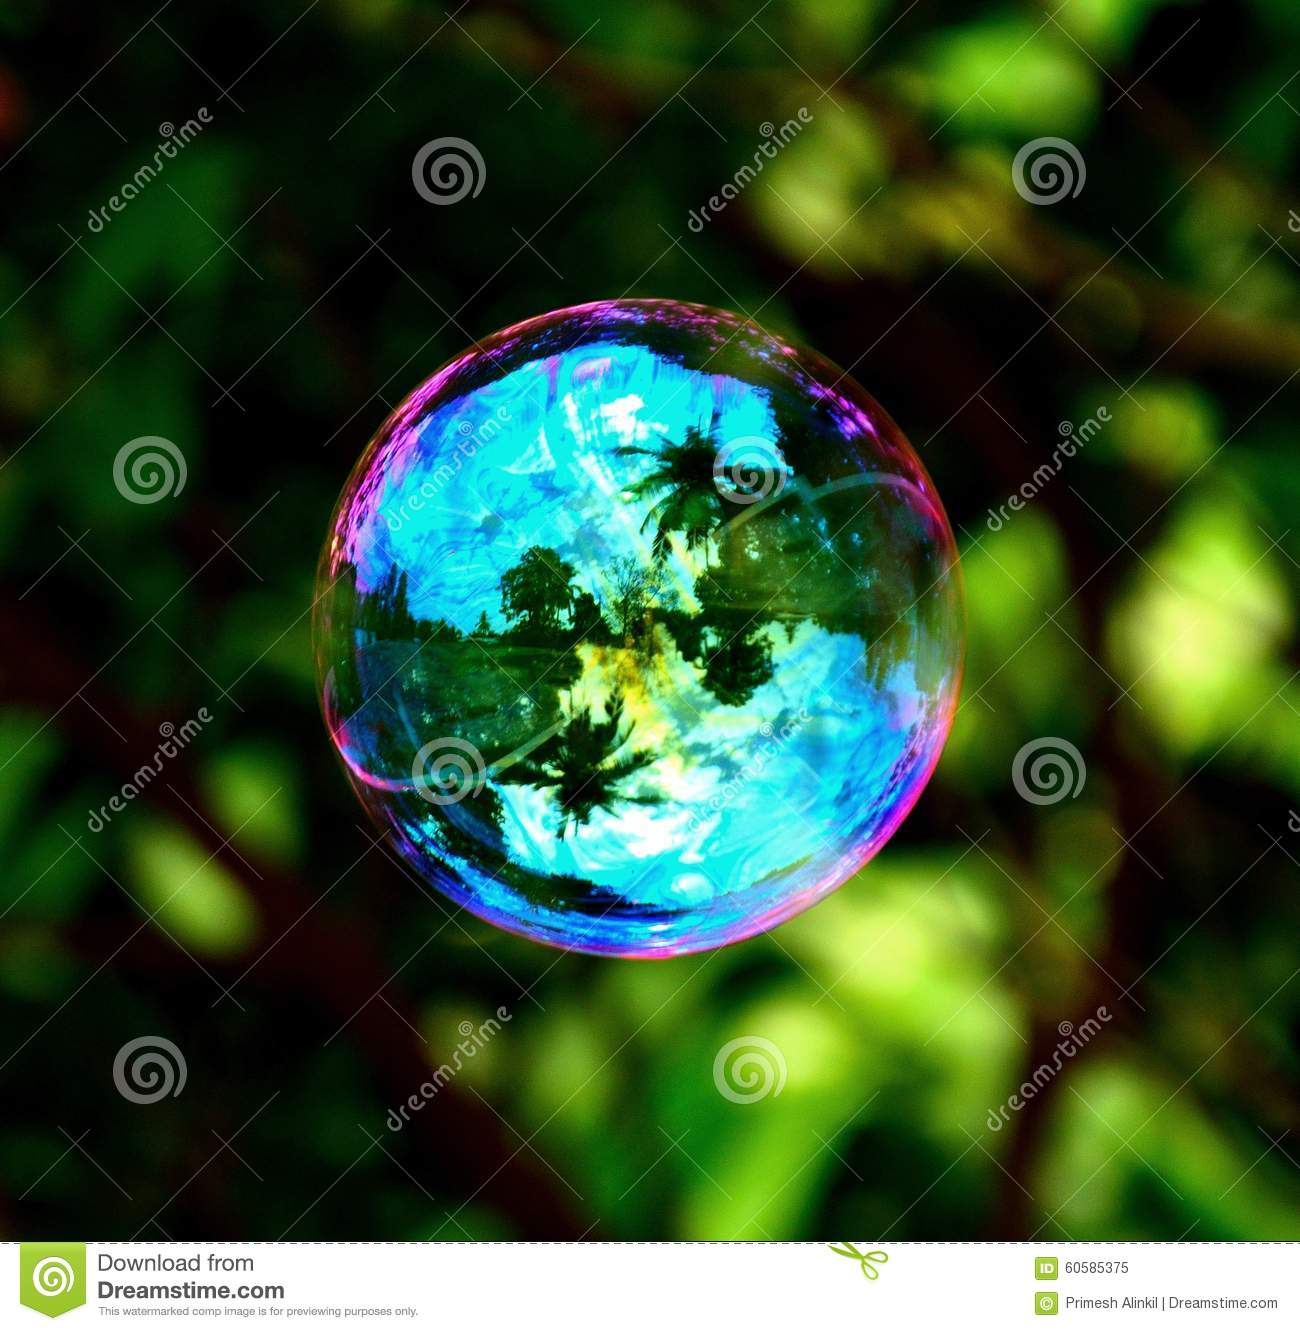 Colorful Soap Bubble Stock Photo - Image: 60585375